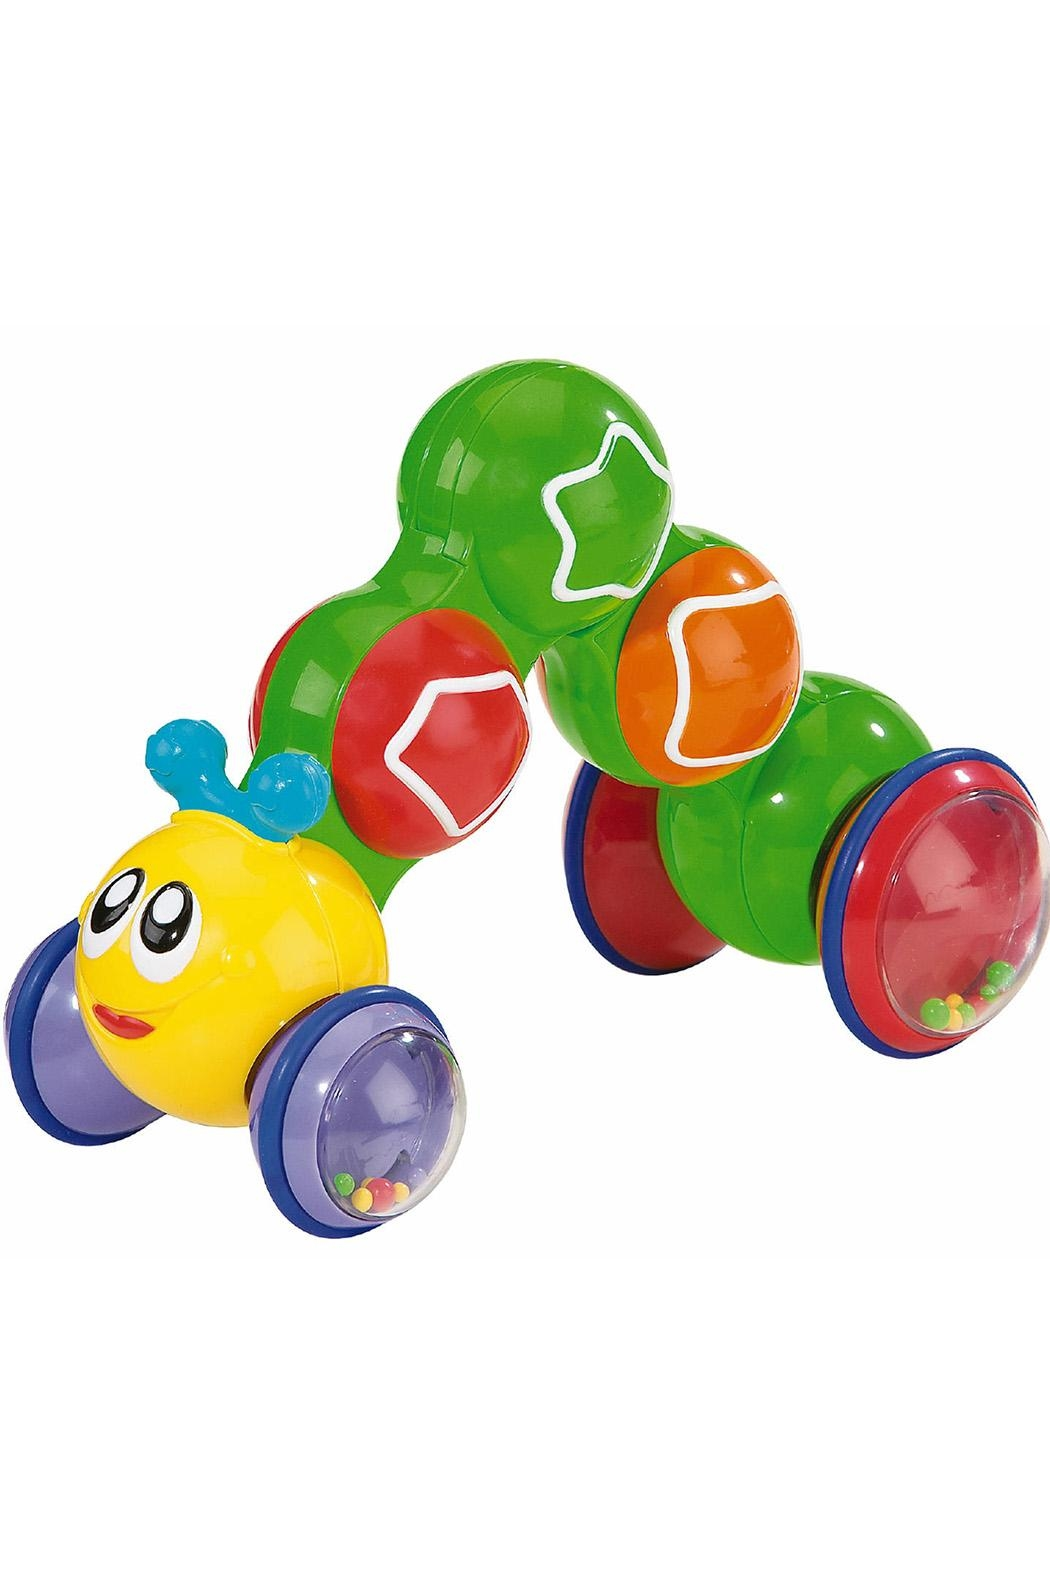 International Playthings Press'n'go Inchworm - Main Image